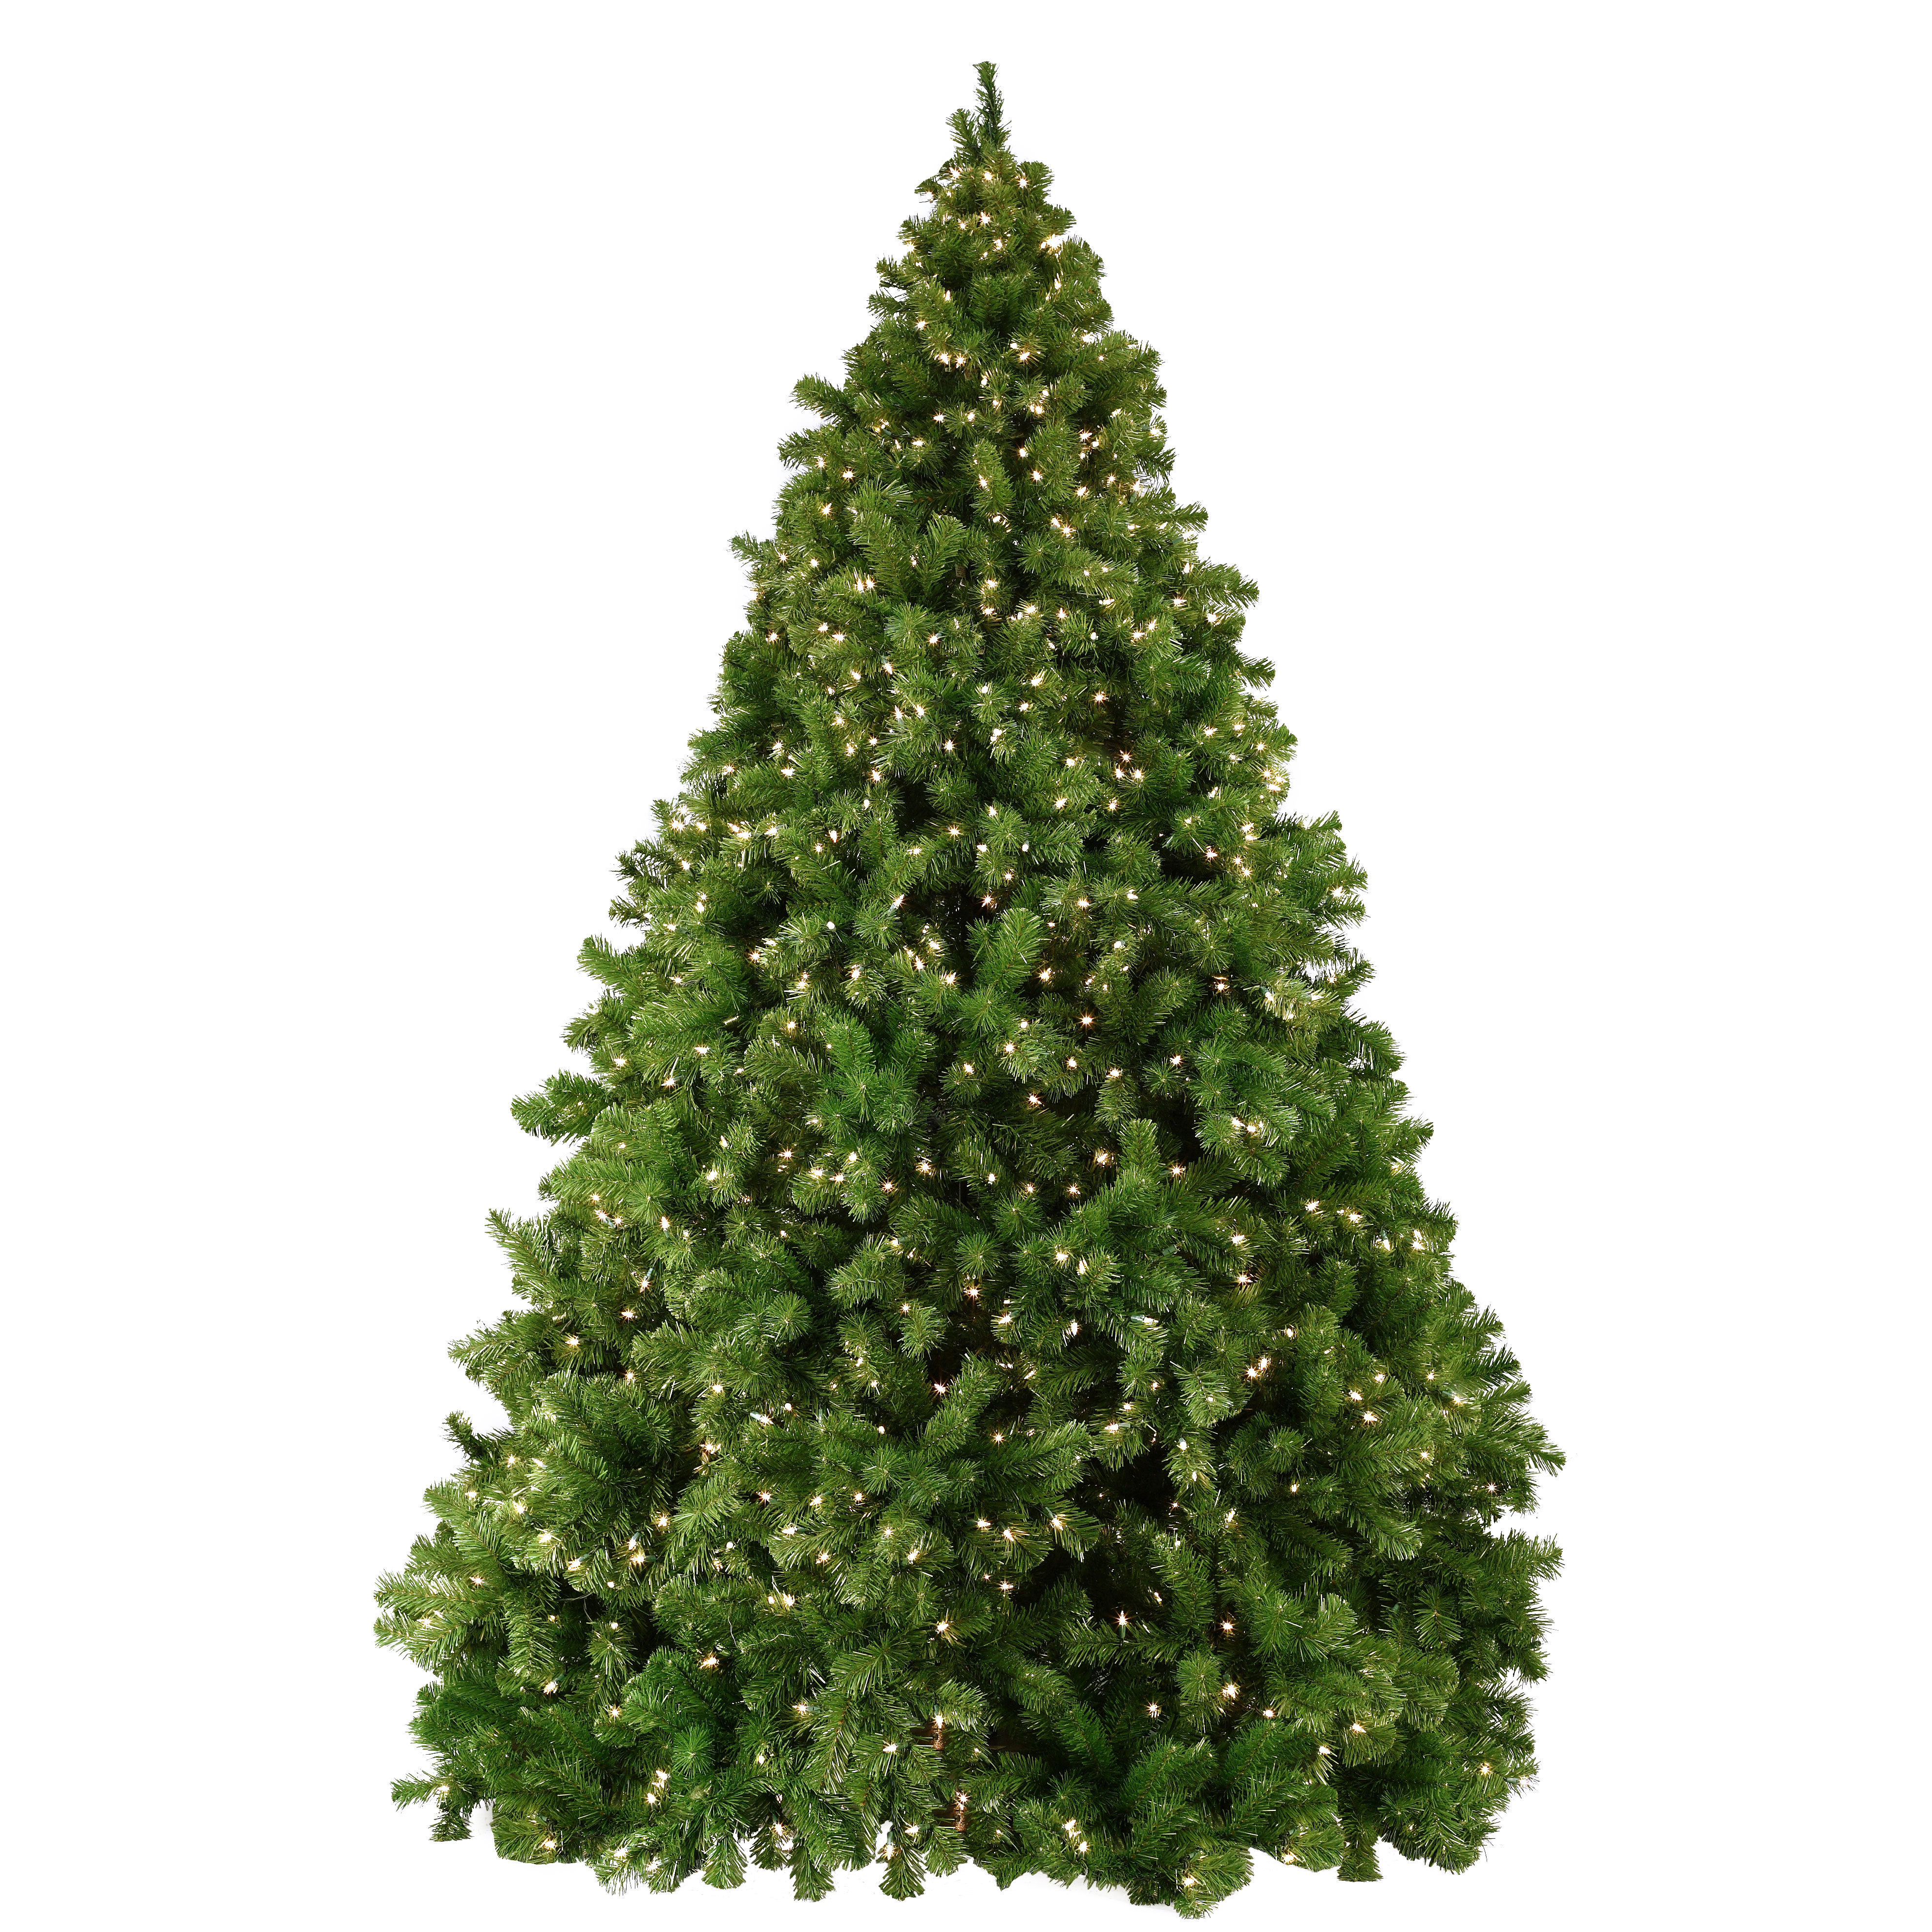 Download Christmas Tree Latest Version 2018 image #35277